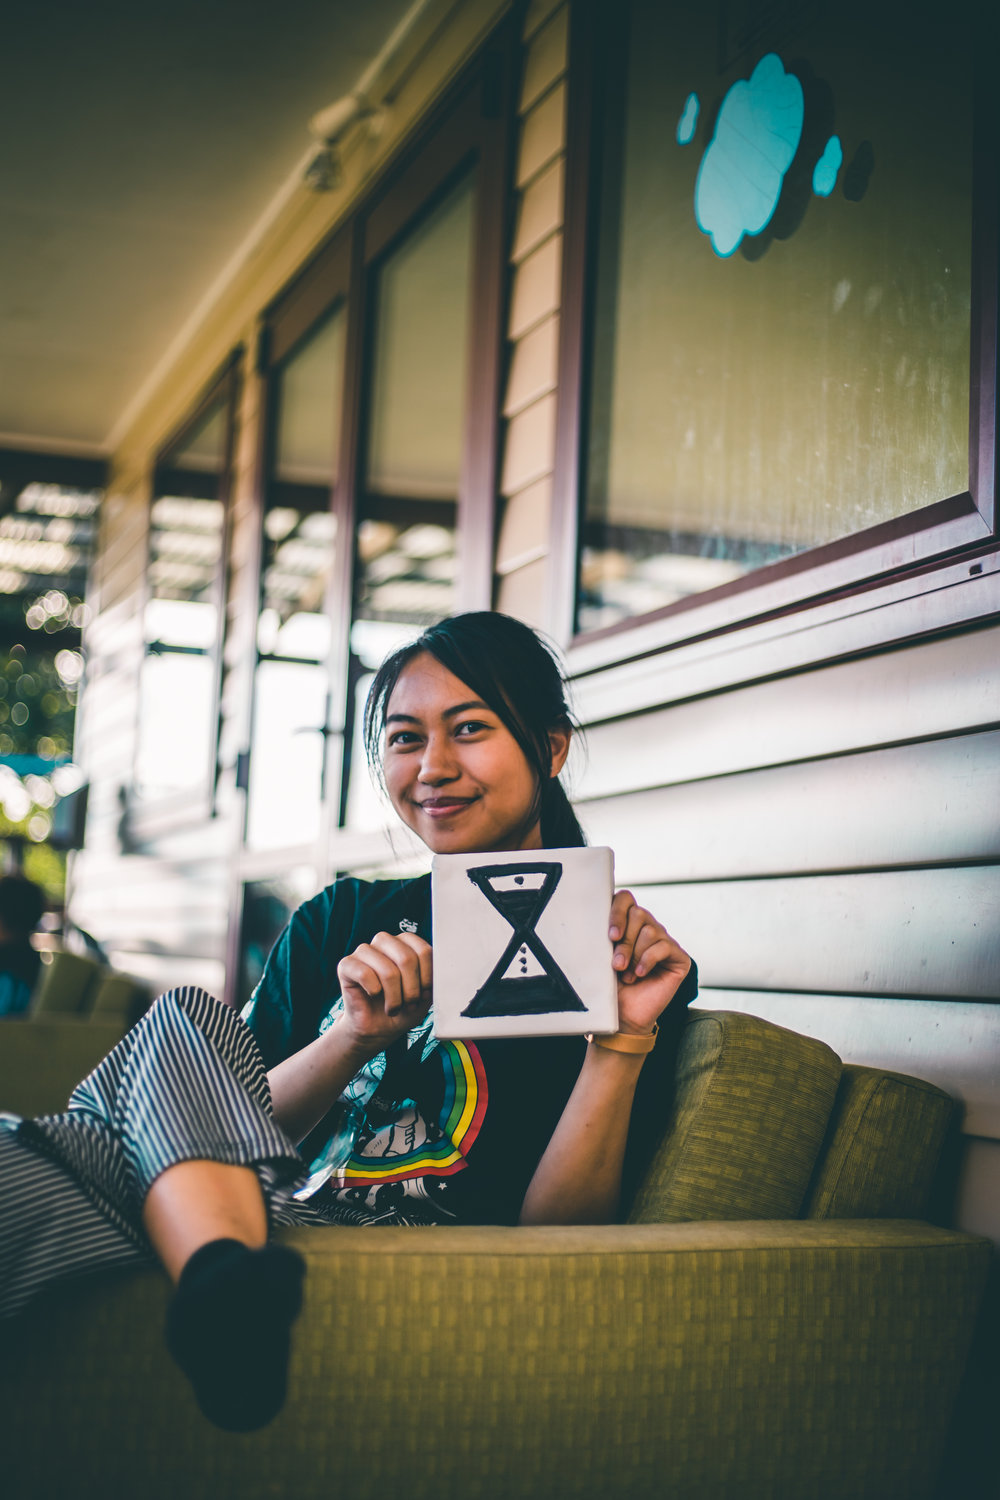 Julia Sokhon - I am a seventeen year old student, born and raised in South Auckland. I have an interest in technology, especially because of the lack of woman representation in the sector. Through OMGTech, I have had a mentor to help me navigate through my year. She has taken me to various companies to learn the reality behind the tech industry. It has been an amazing experience meeting new people and forming bonds. I have helped organise a VR event at my school, with OMGTech's guidance. Their connections and networks have benefit the members in the programme tremendously. OMGTech have taught me to get out of my comfort zone, which is something that I'll be grateful for forever.